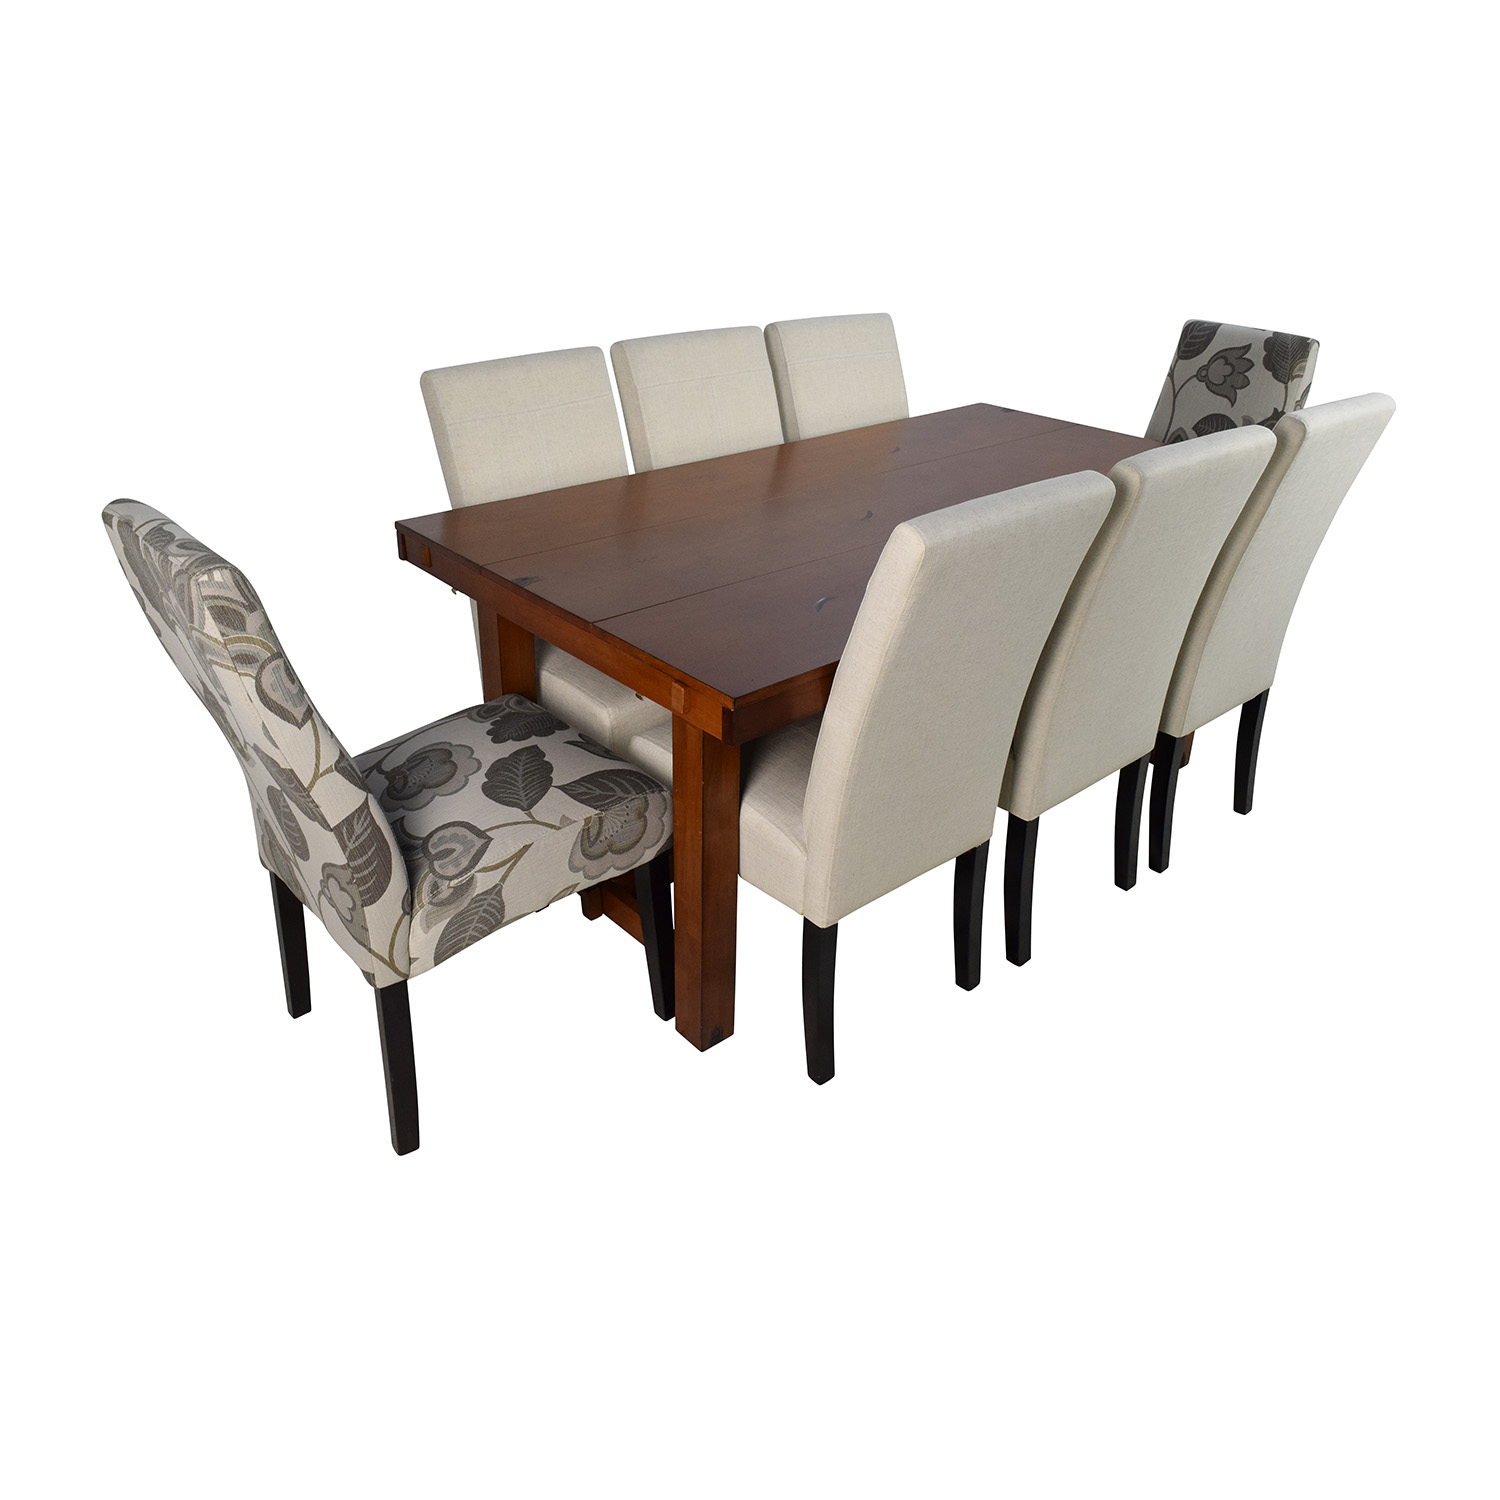 Walker Edison and Christopher Knight Walker Edison Huntsman Dining Table with Christopher Knight Chairs Brown/White Chairs